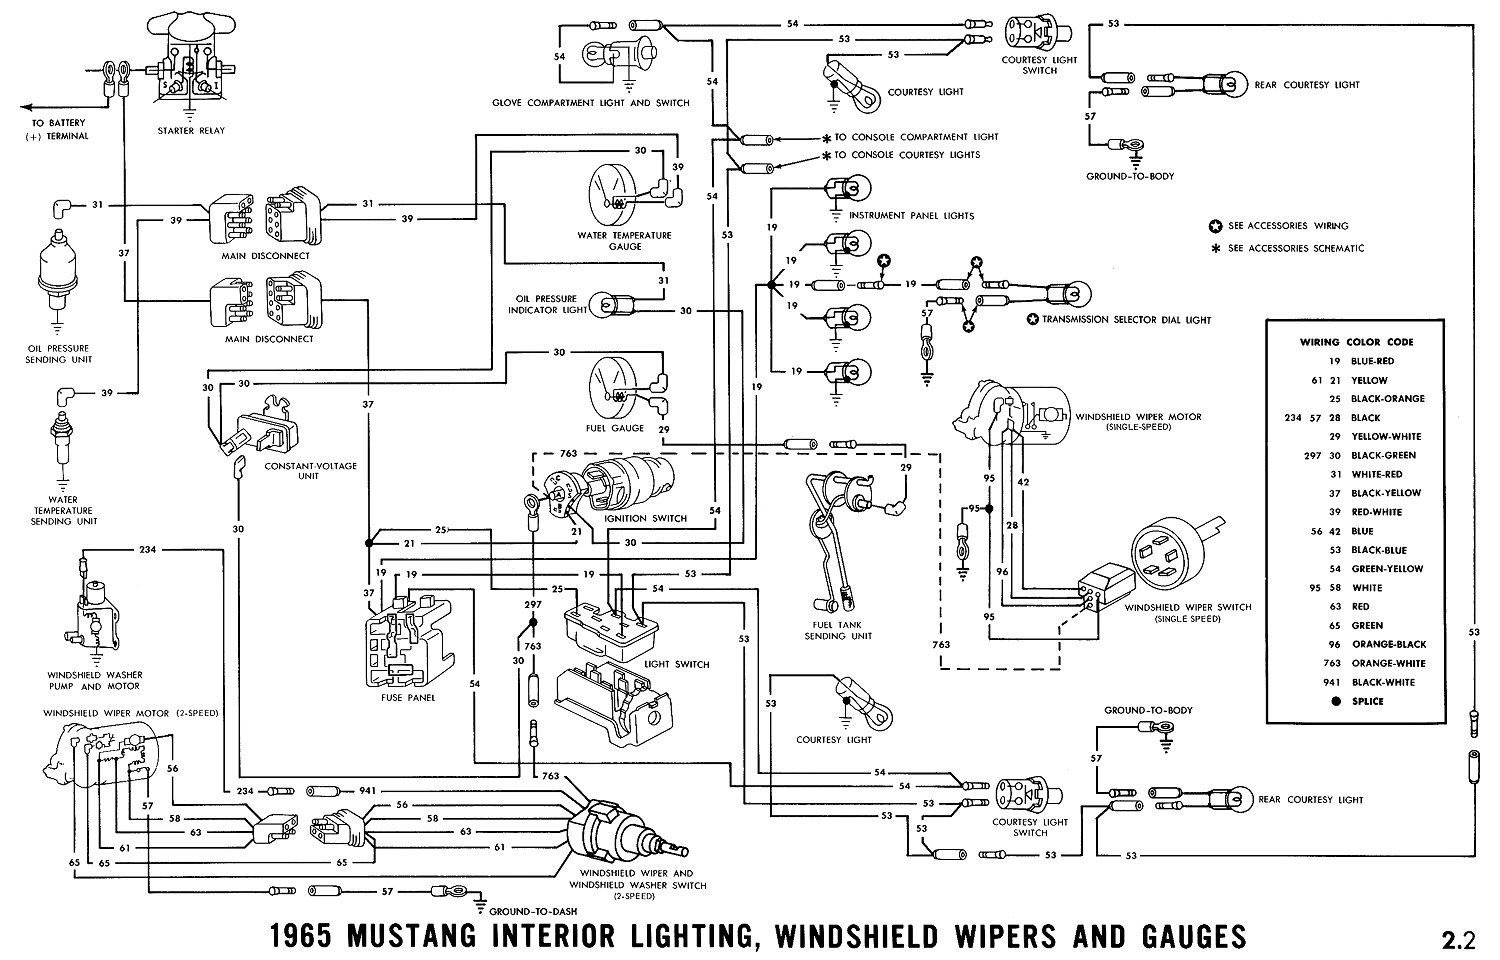 1965g mustang wiring diagrams mustang engine diagram \u2022 free wiring ford mustang 89 ignition wiring diagram at gsmx.co